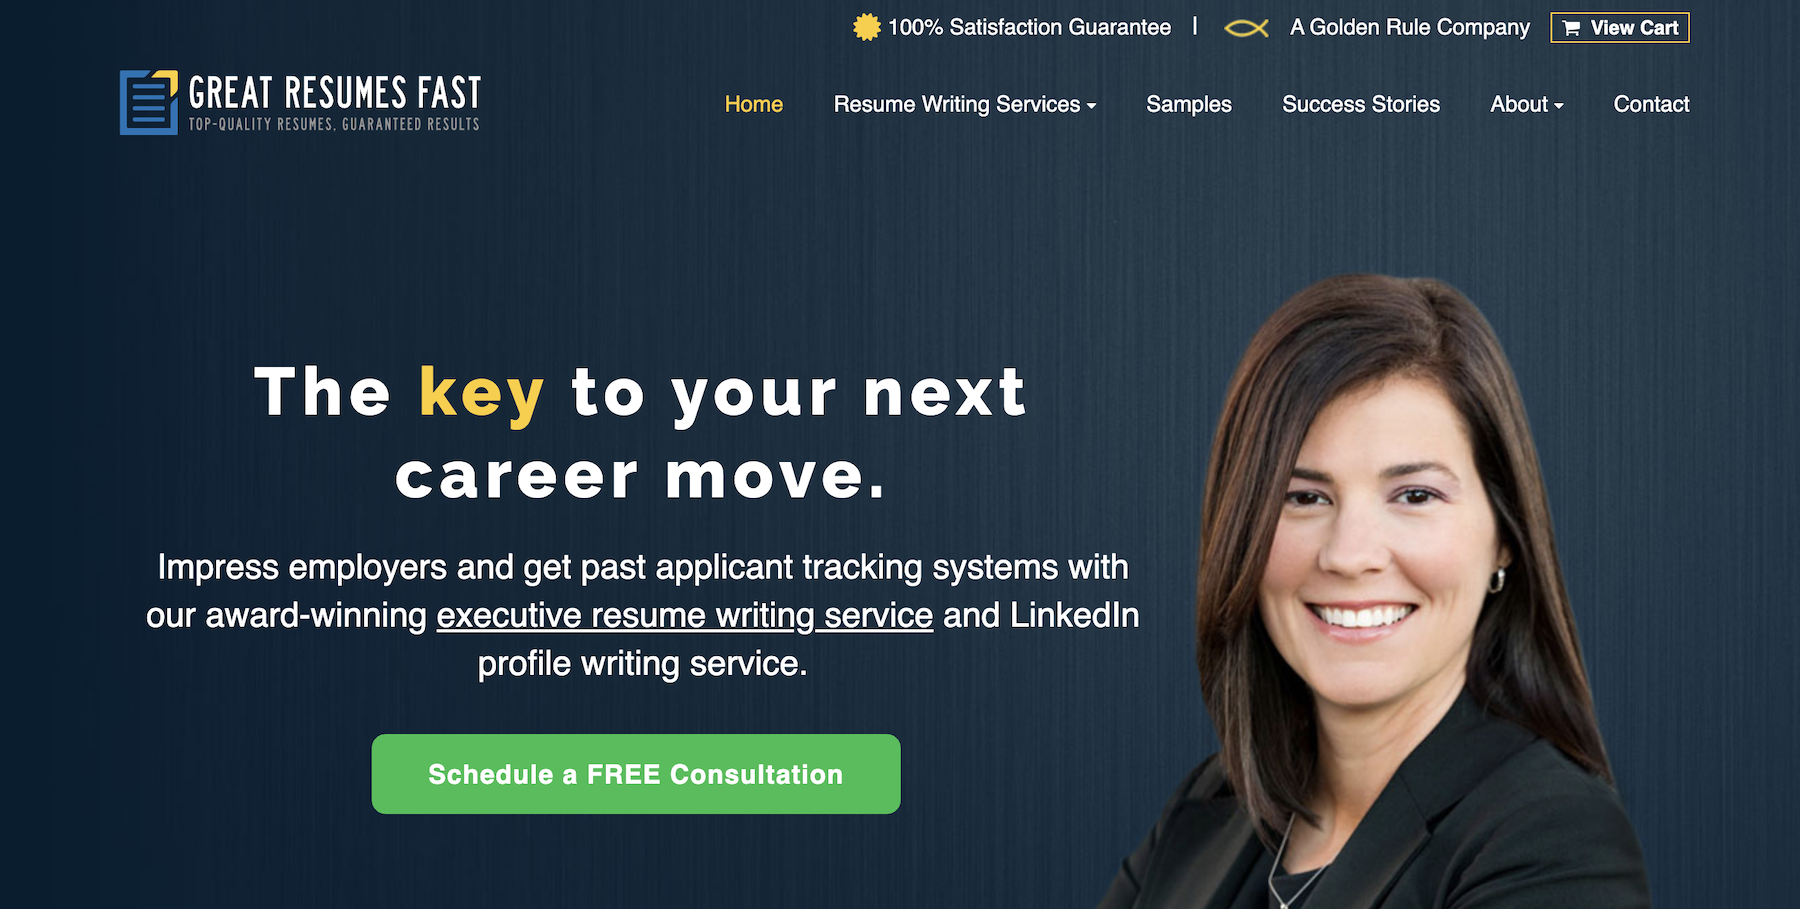 Great Resumes Fast - Reviews, Cost, and More